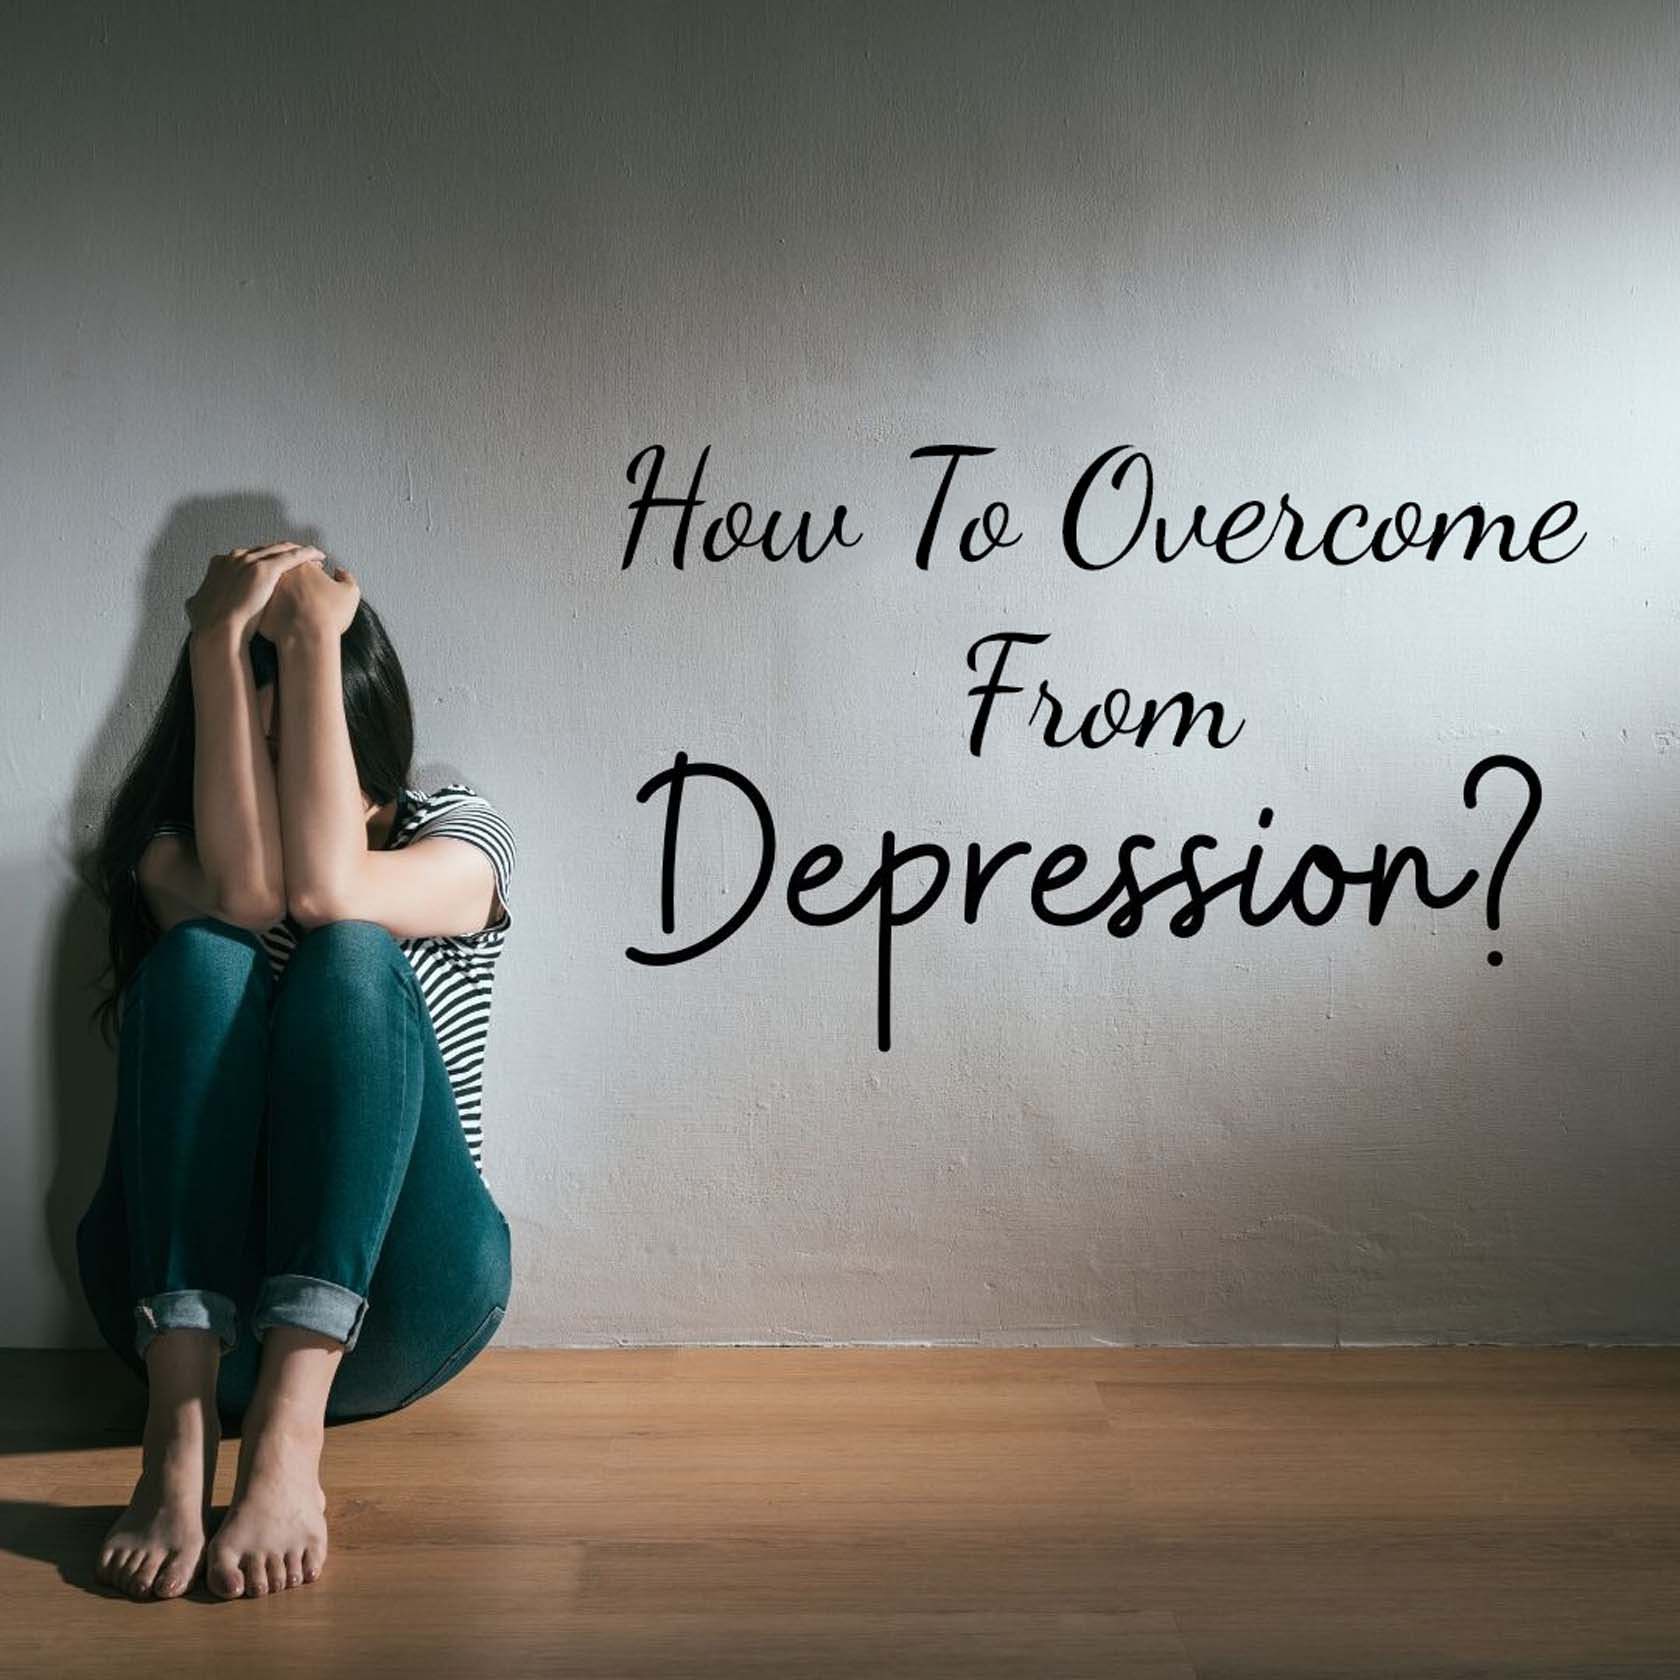 How To Overcome Serious Depression